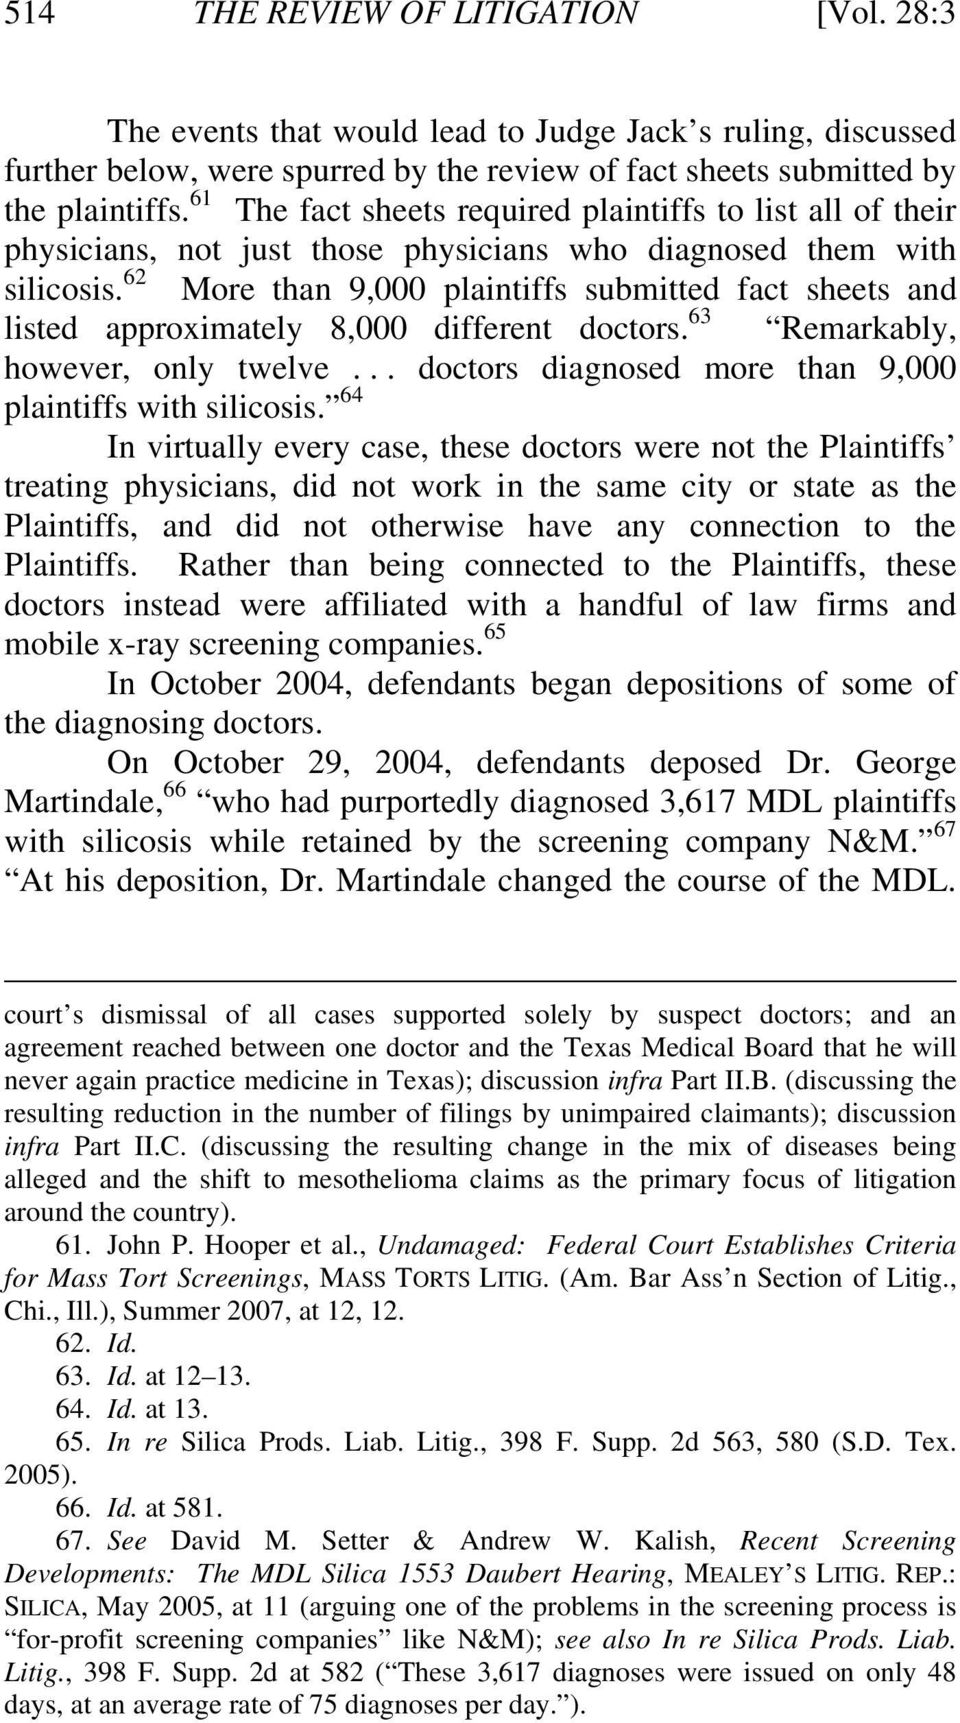 62 More than 9,000 plaintiffs submitted fact sheets and listed approximately 8,000 different doctors. 63 Remarkably, however, only twelve... doctors diagnosed more than 9,000 plaintiffs with silicosis.